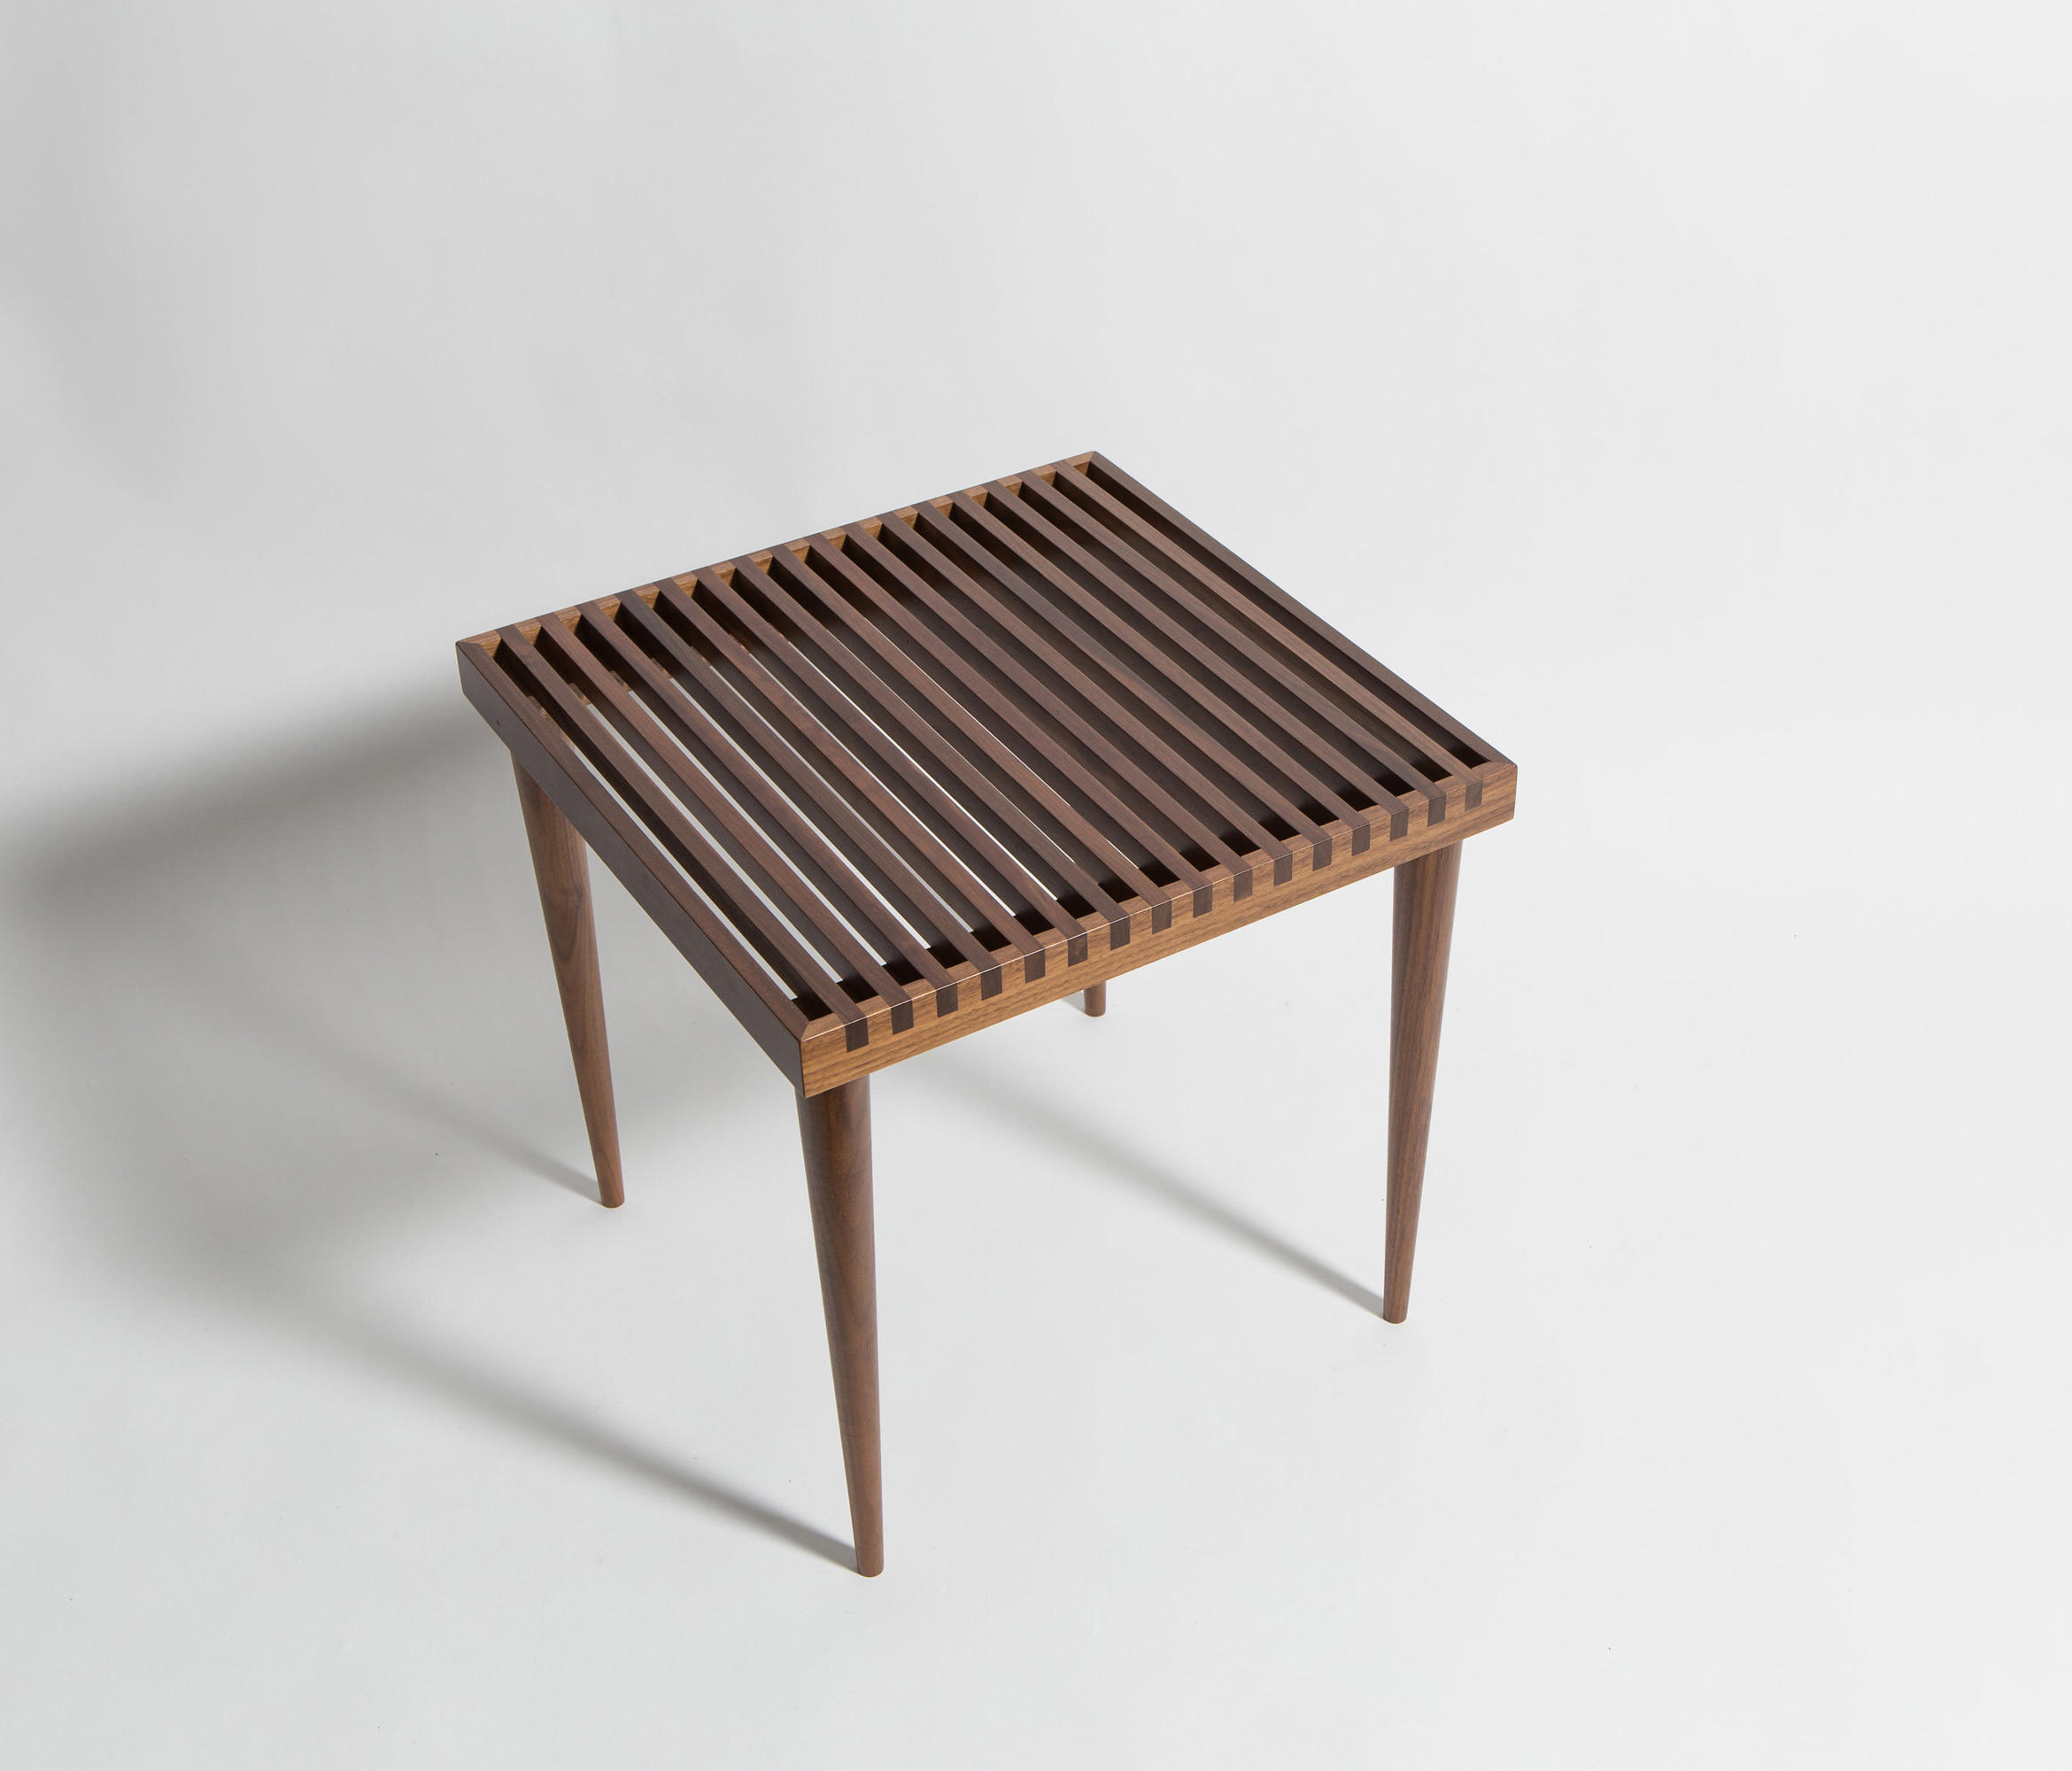 slatted stacking tables  side tables from smilow design  architonic -  slatted stacking tables by smilow design  side tables